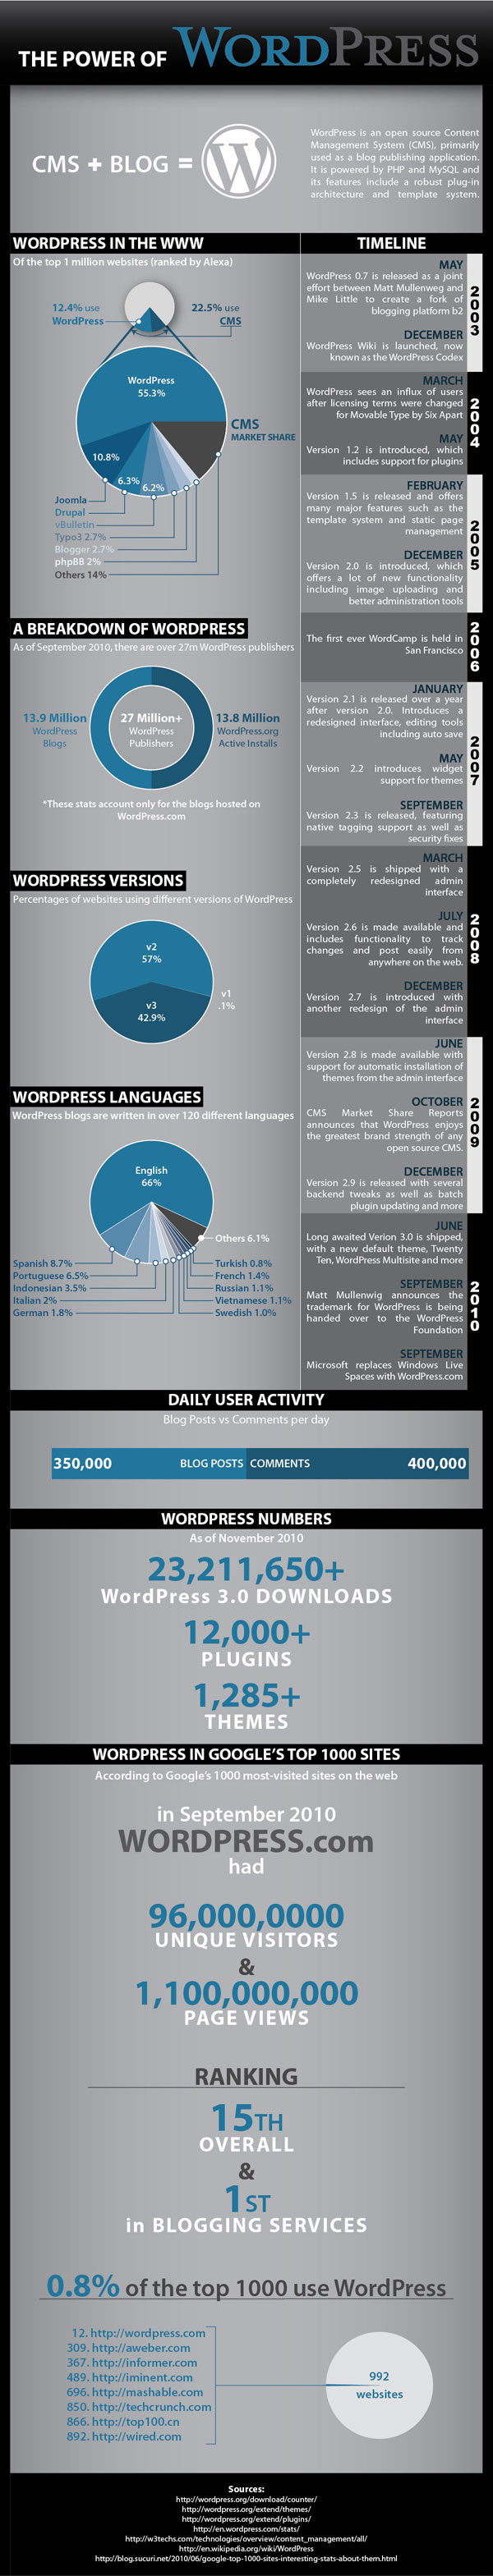 WordPress Infographic - The Power of WordPress